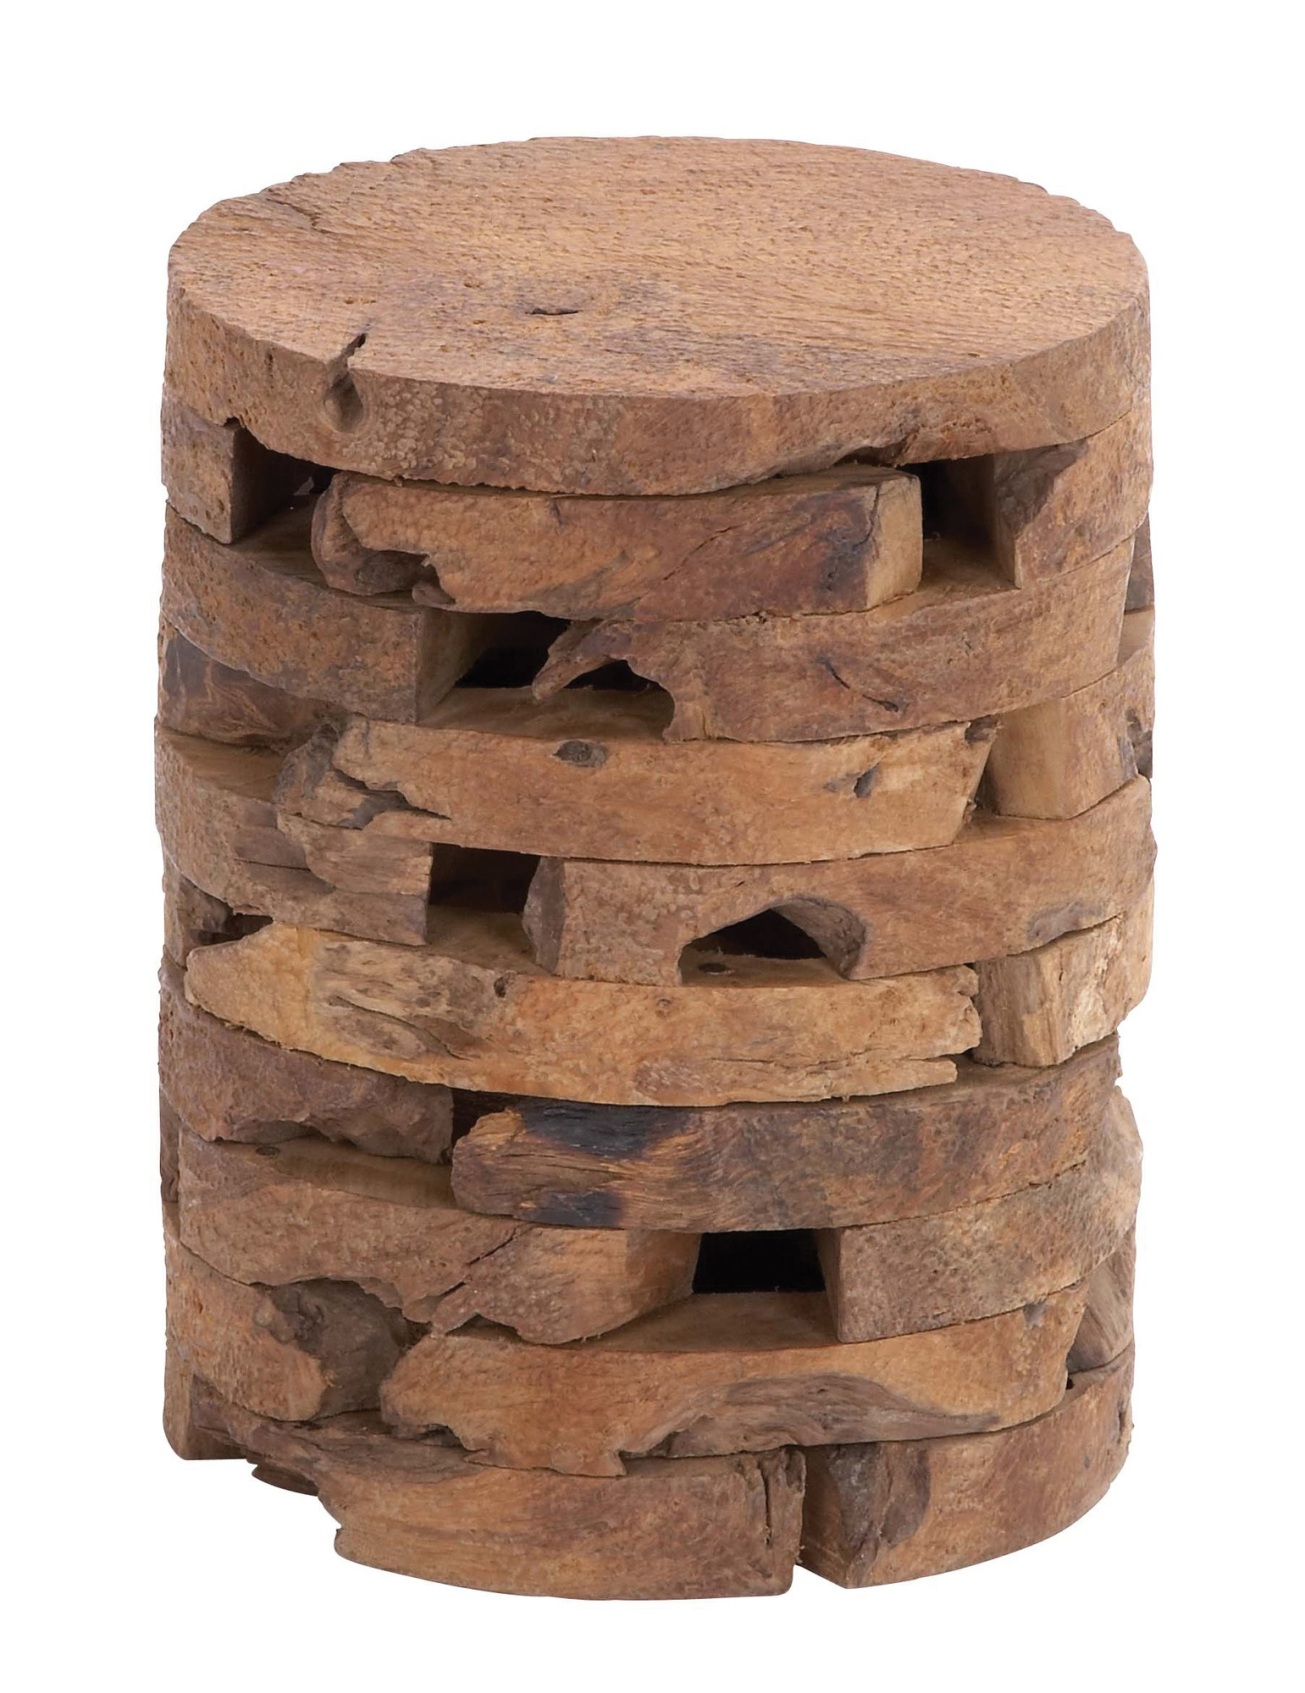 Wooden Teak Stool by Woodland Imports, All Modern $149.99